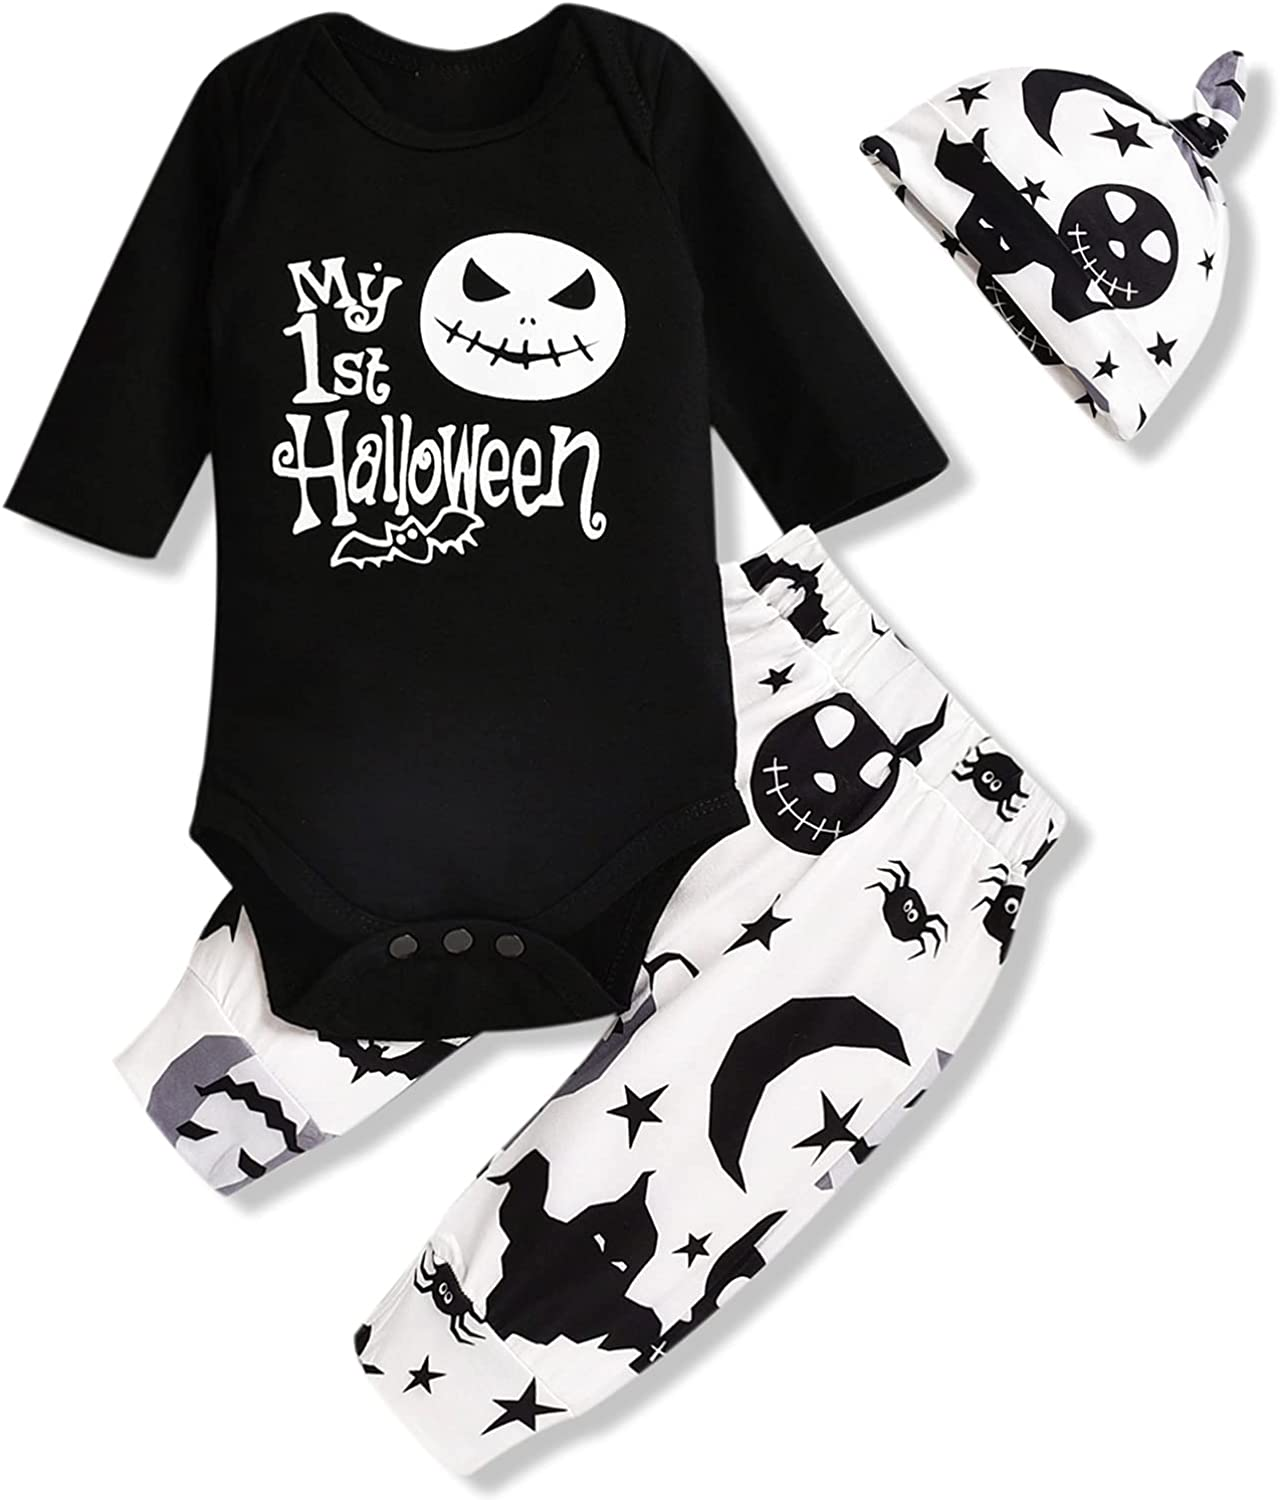 Baby Boys Halloween Clothes, My 1st Halloween Outfits Romper Pants Set